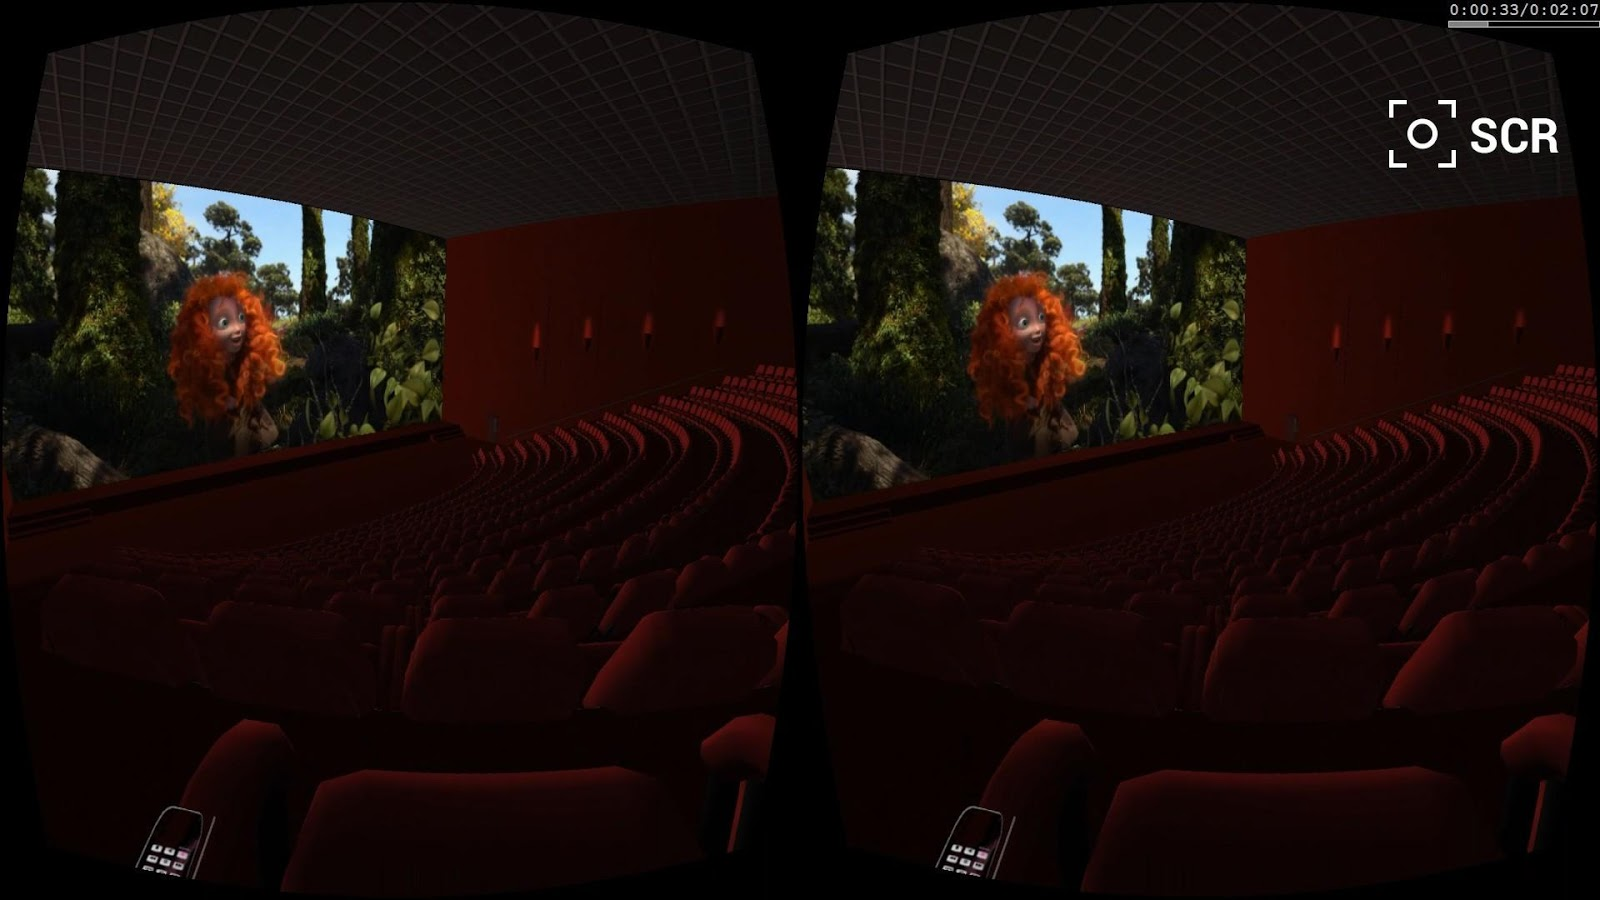 Cmoar VR Cinema PRO - Android Apps on Google Play